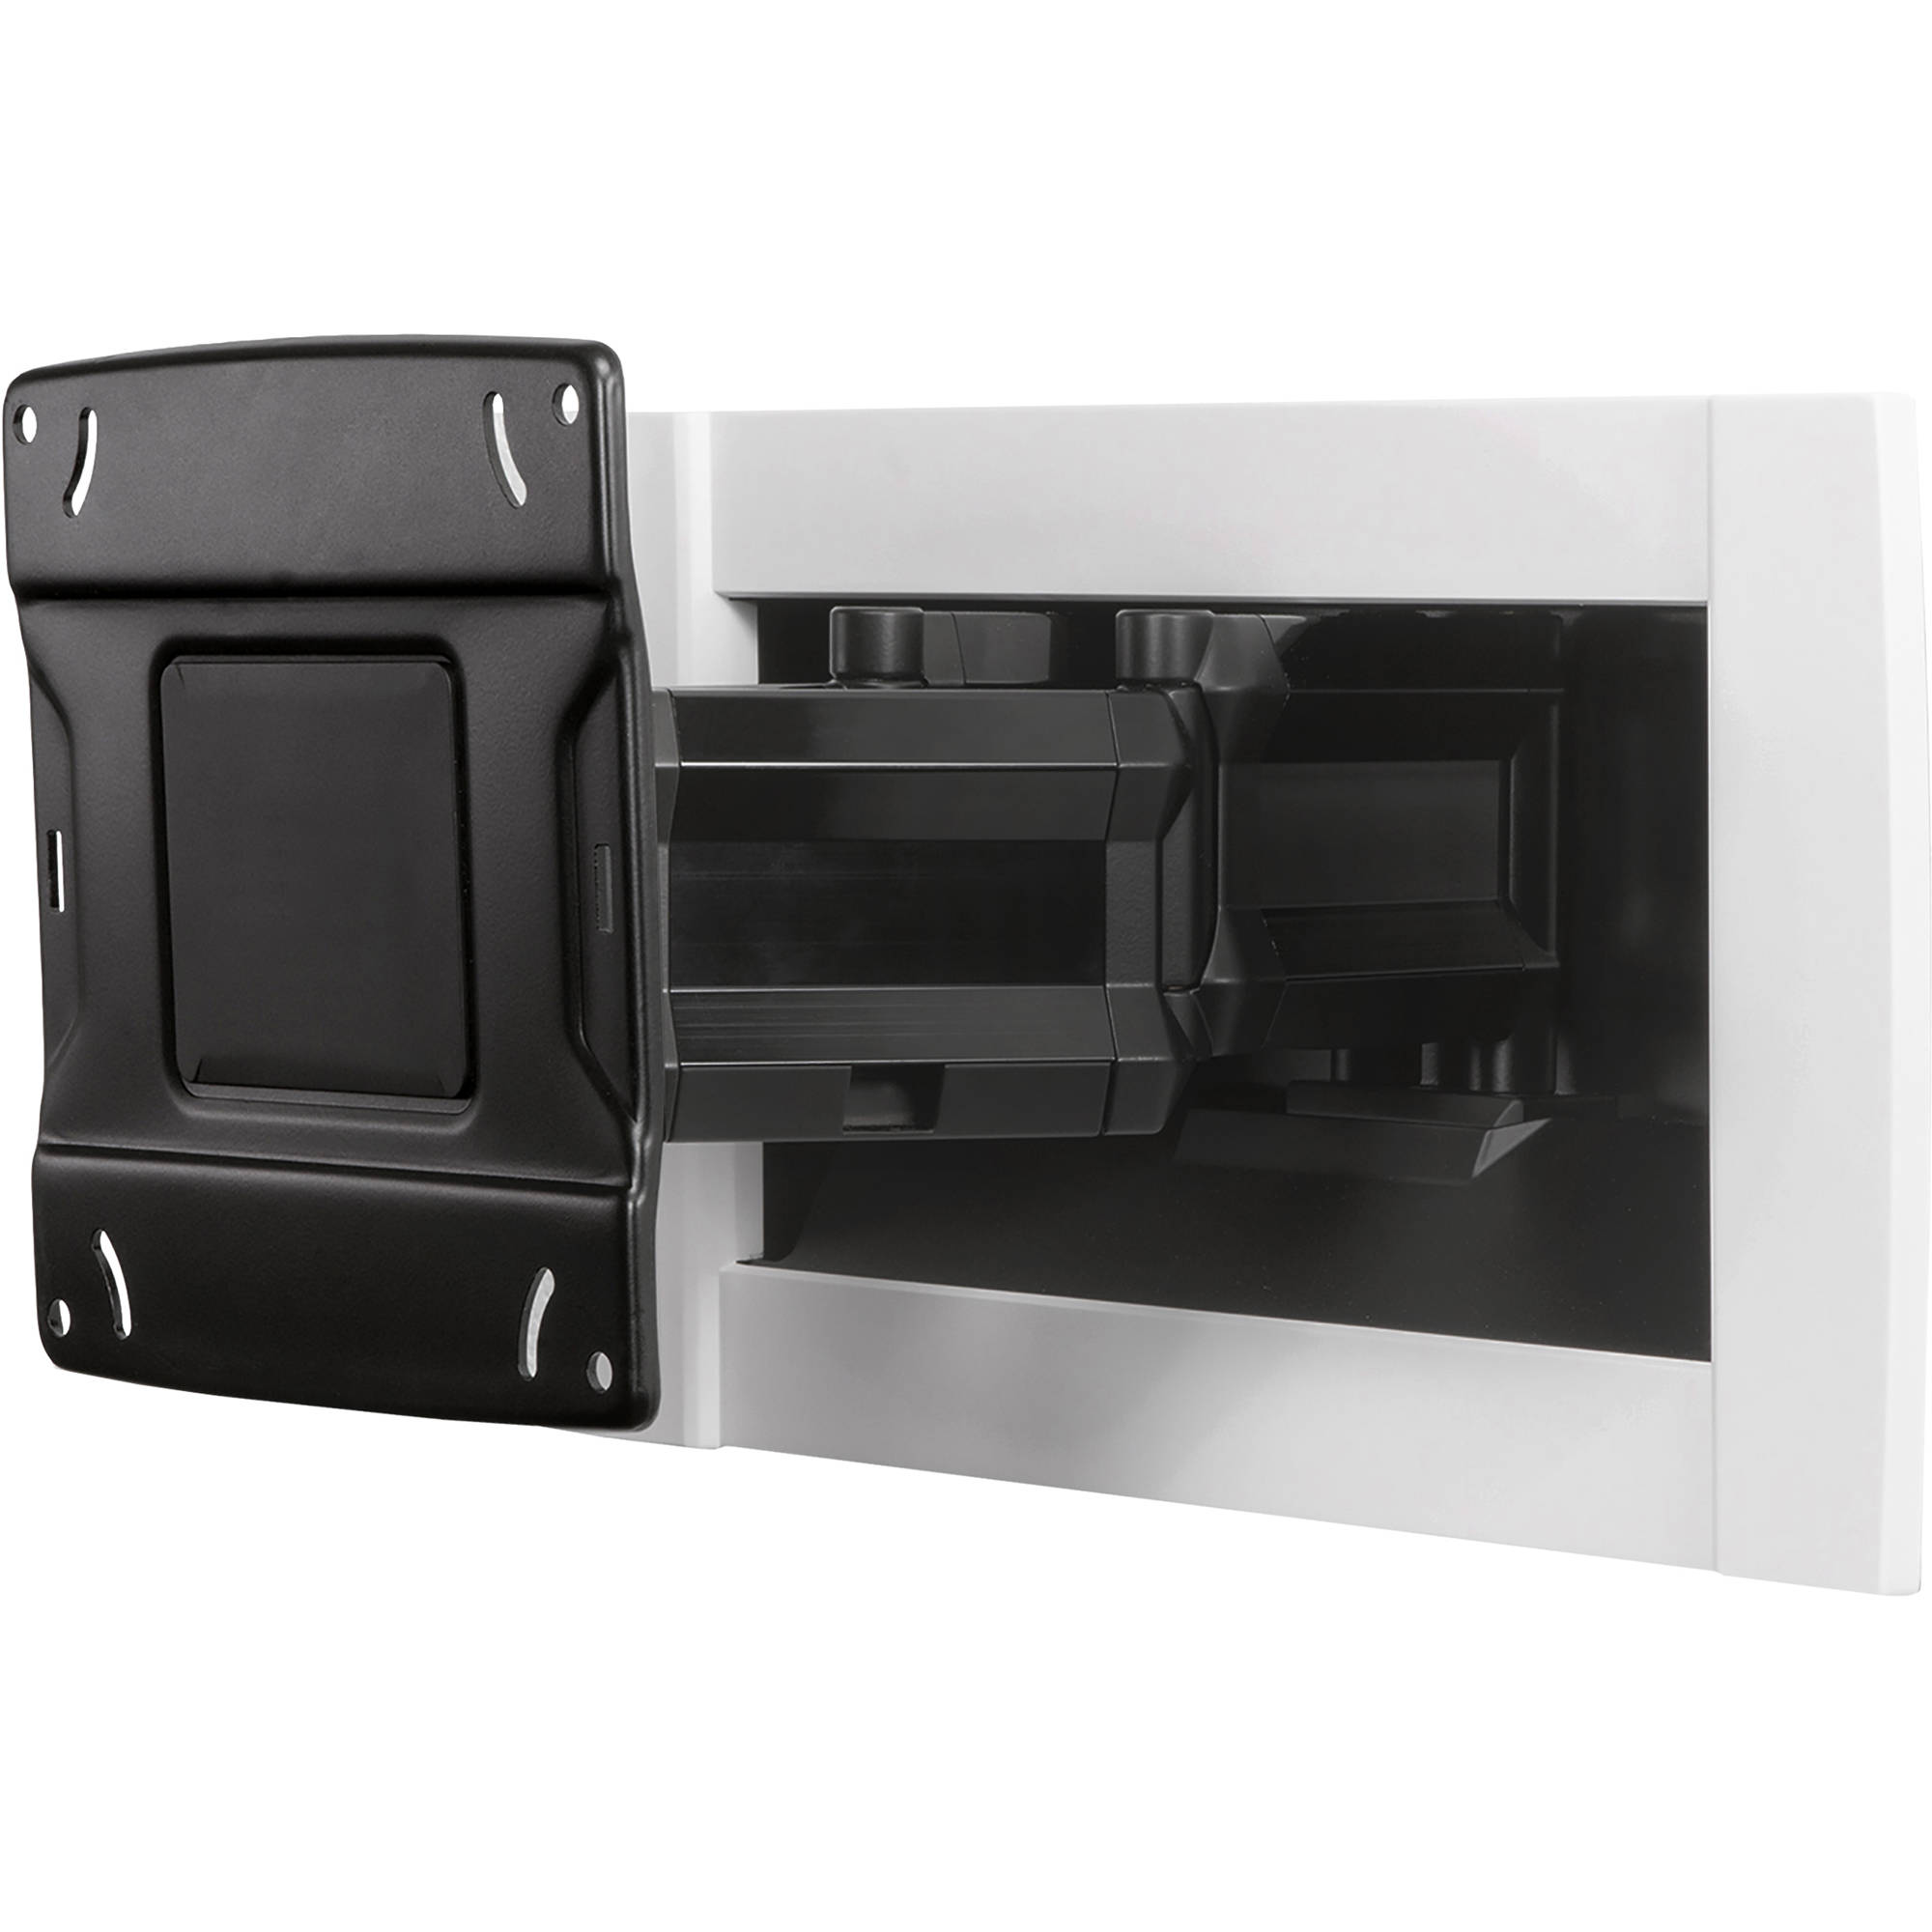 Omnimount Oe120iw Recessed In Wall Mount For 42 To 80 Tvs